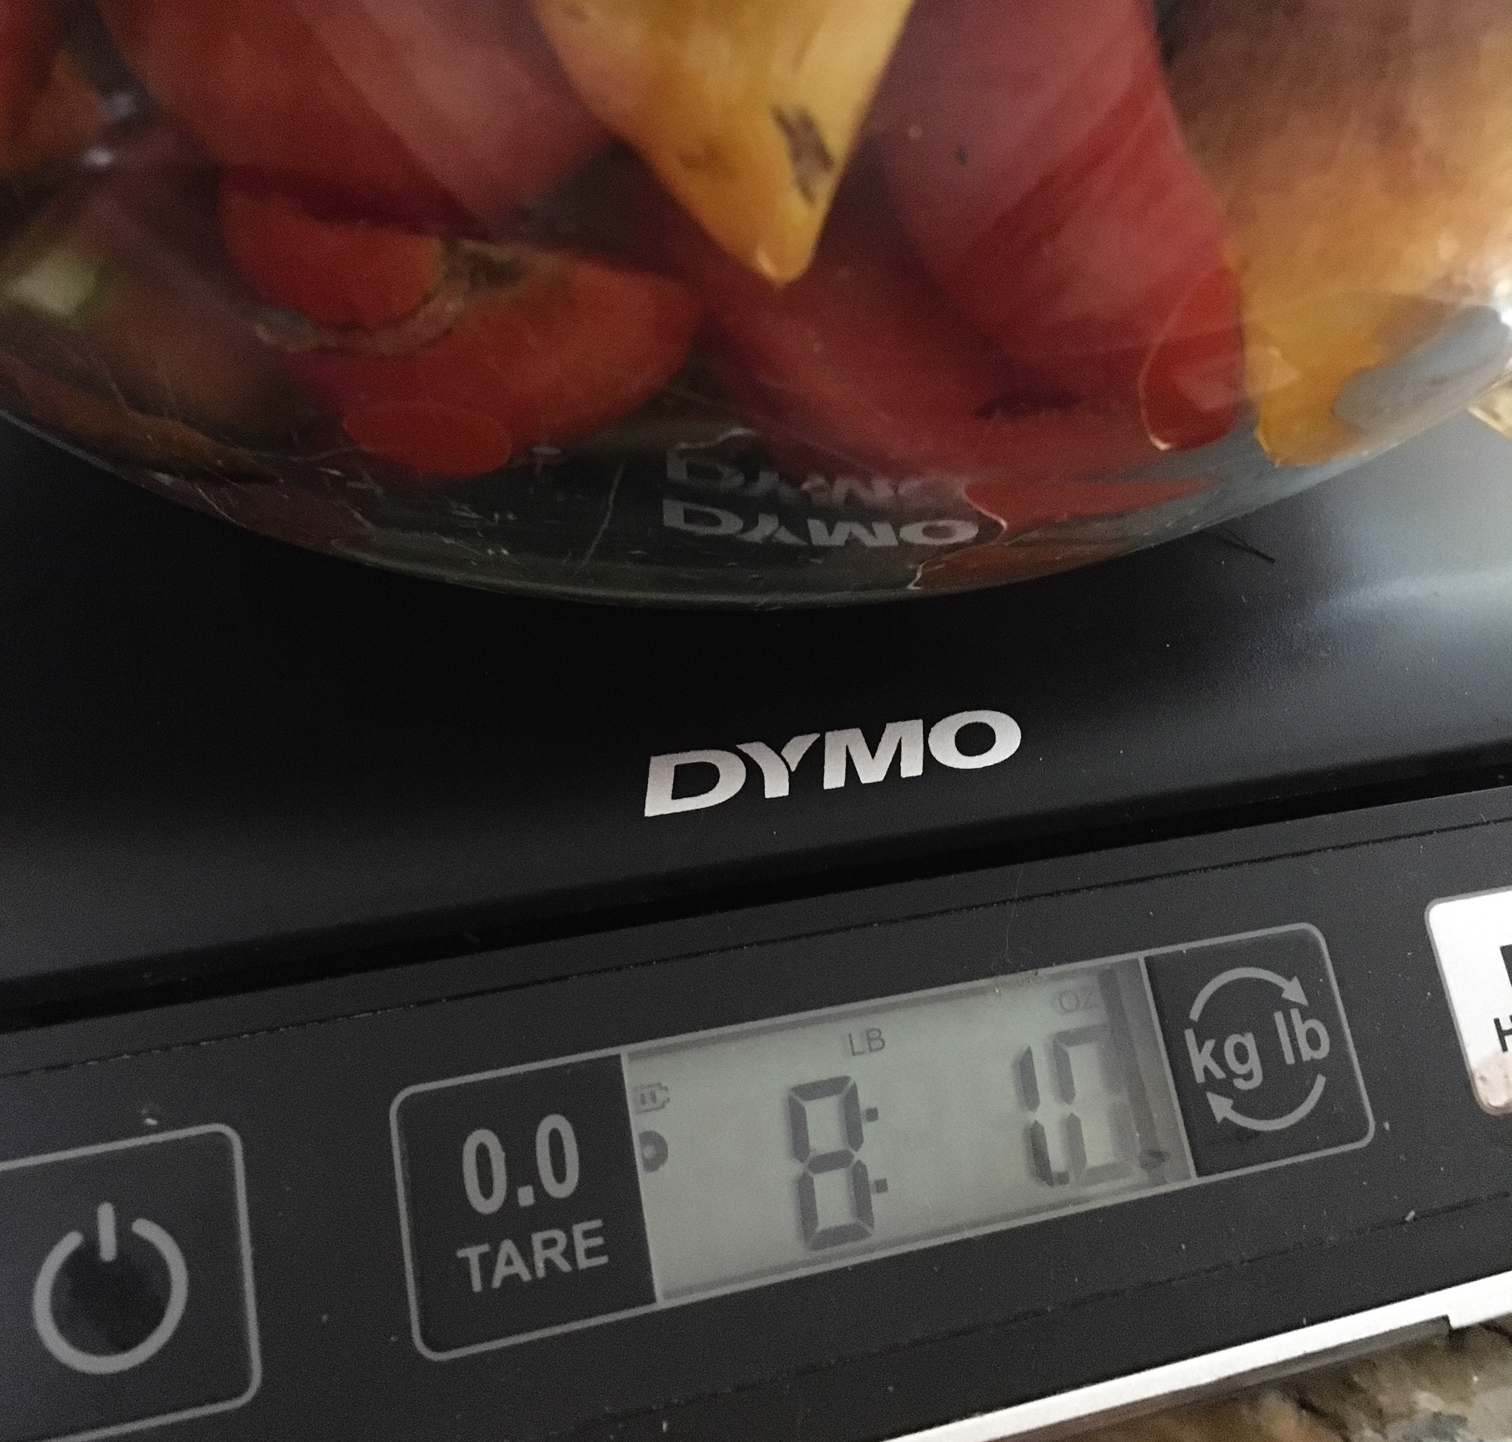 Bowl of chopped tomatoes on the Dymo scale. The bowl weighed 2lb 1.56oz and I forgot to TARE it before measuring, which would have made it easier to weigh only the tomatoes, not the bowl too. What percent of a tomato is water weight?